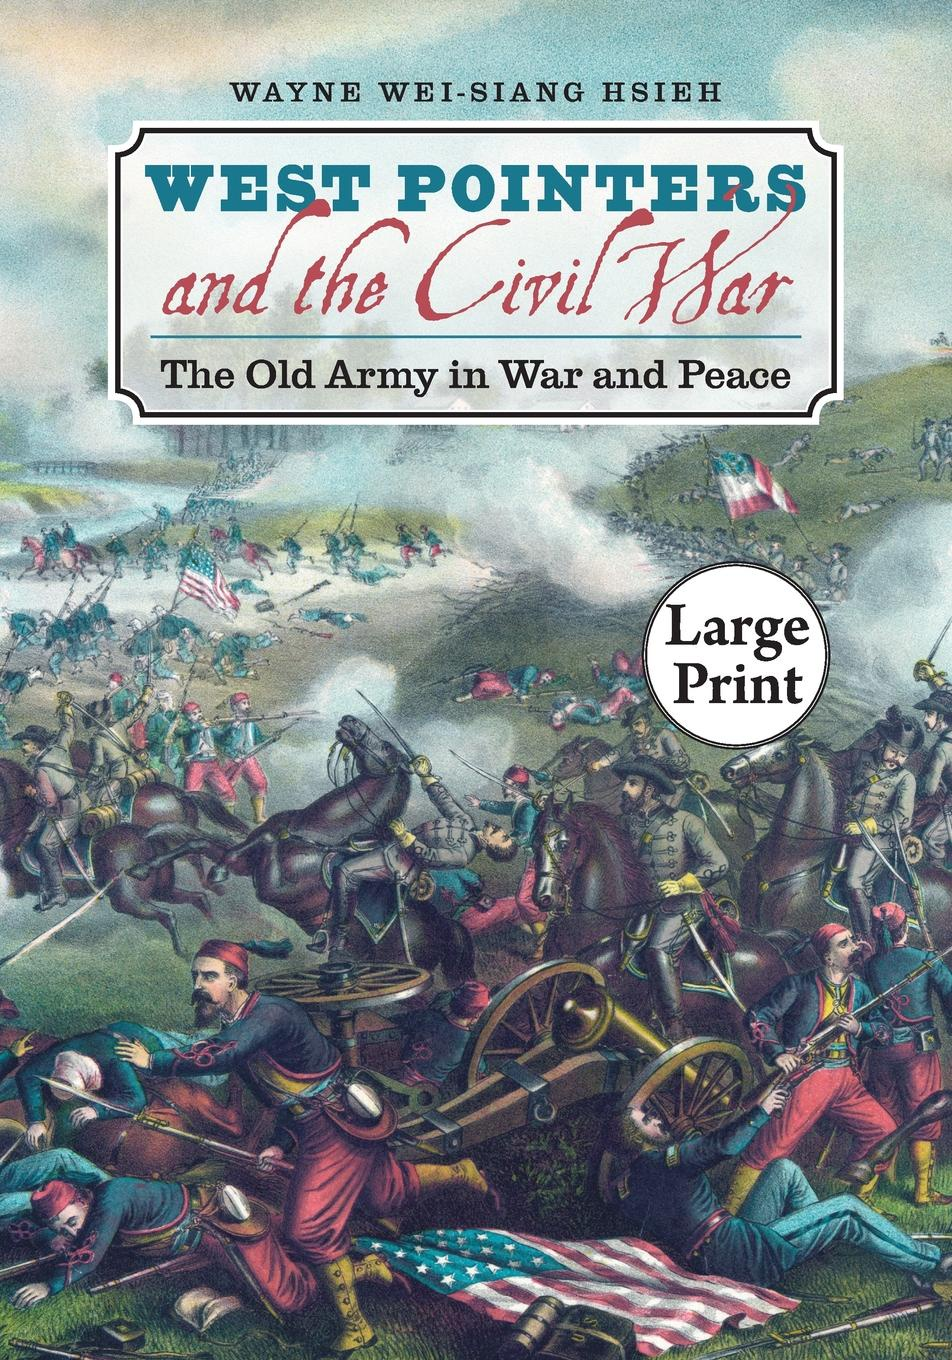 цена Wayne Wei-Siang Hsieh West Pointers and the Civil War. The Old Army in War and Peace, Large Print Ed